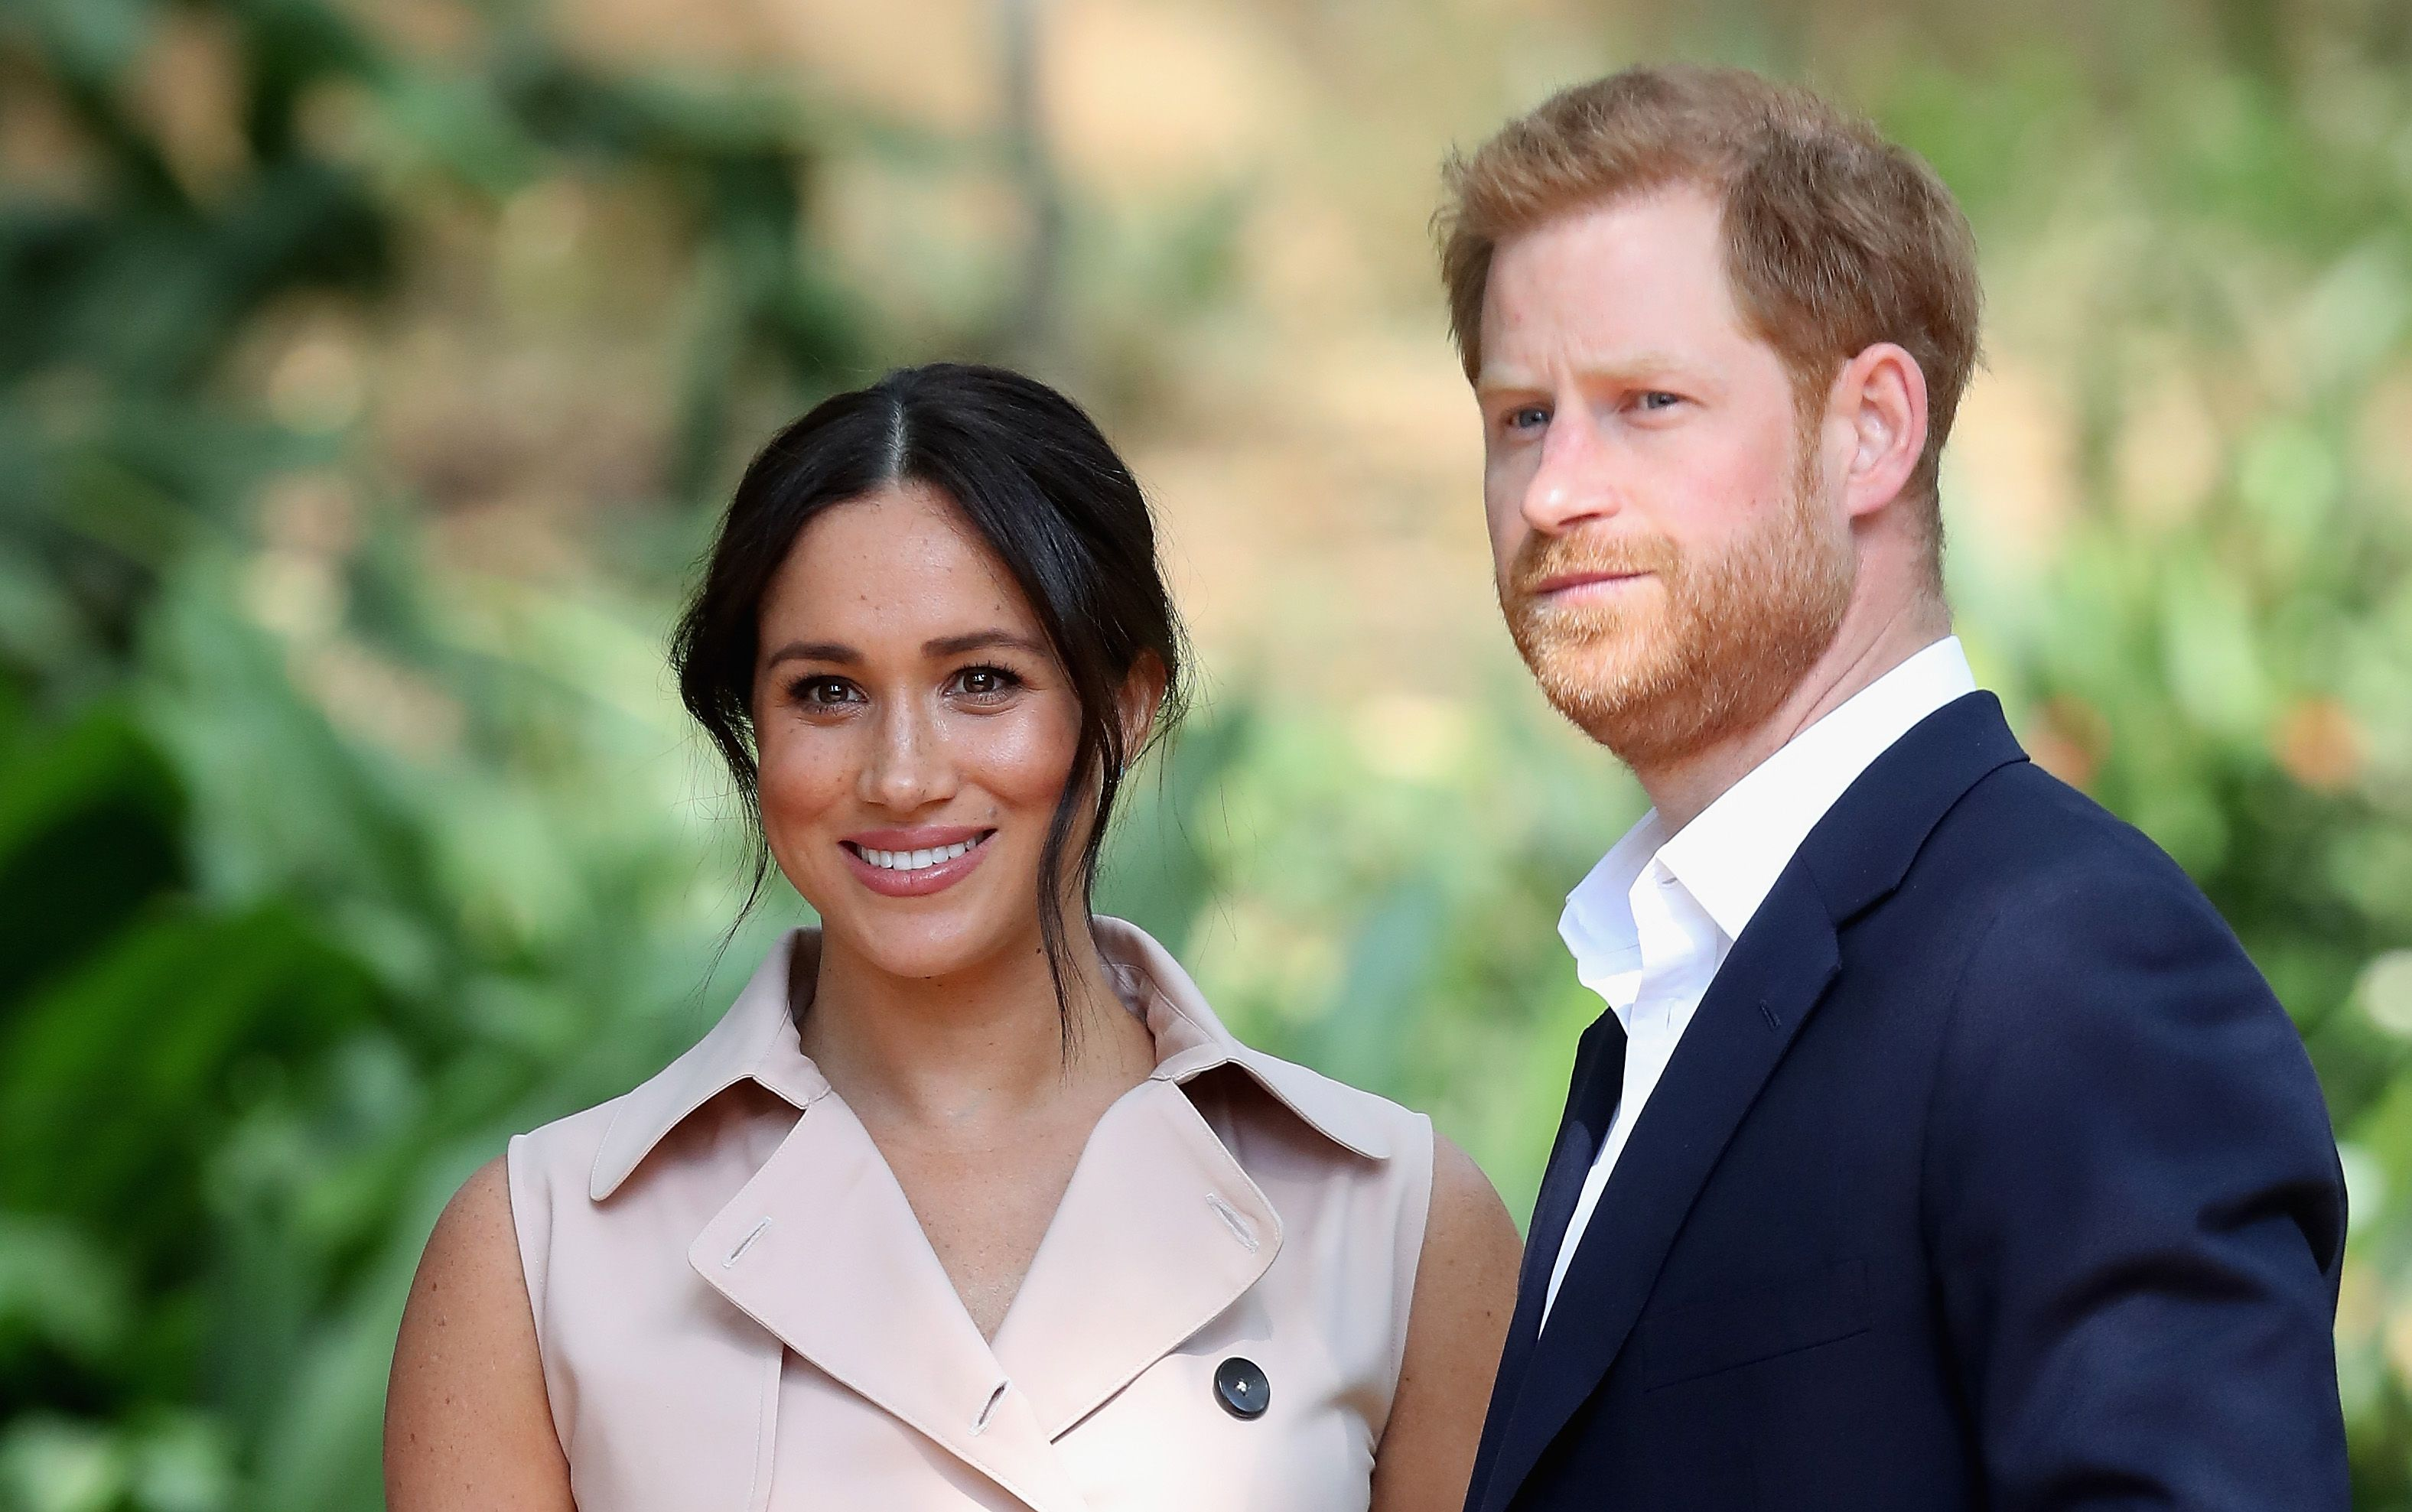 Ed Sheeran visits Prince Harry and Meghan Markle 'at home'